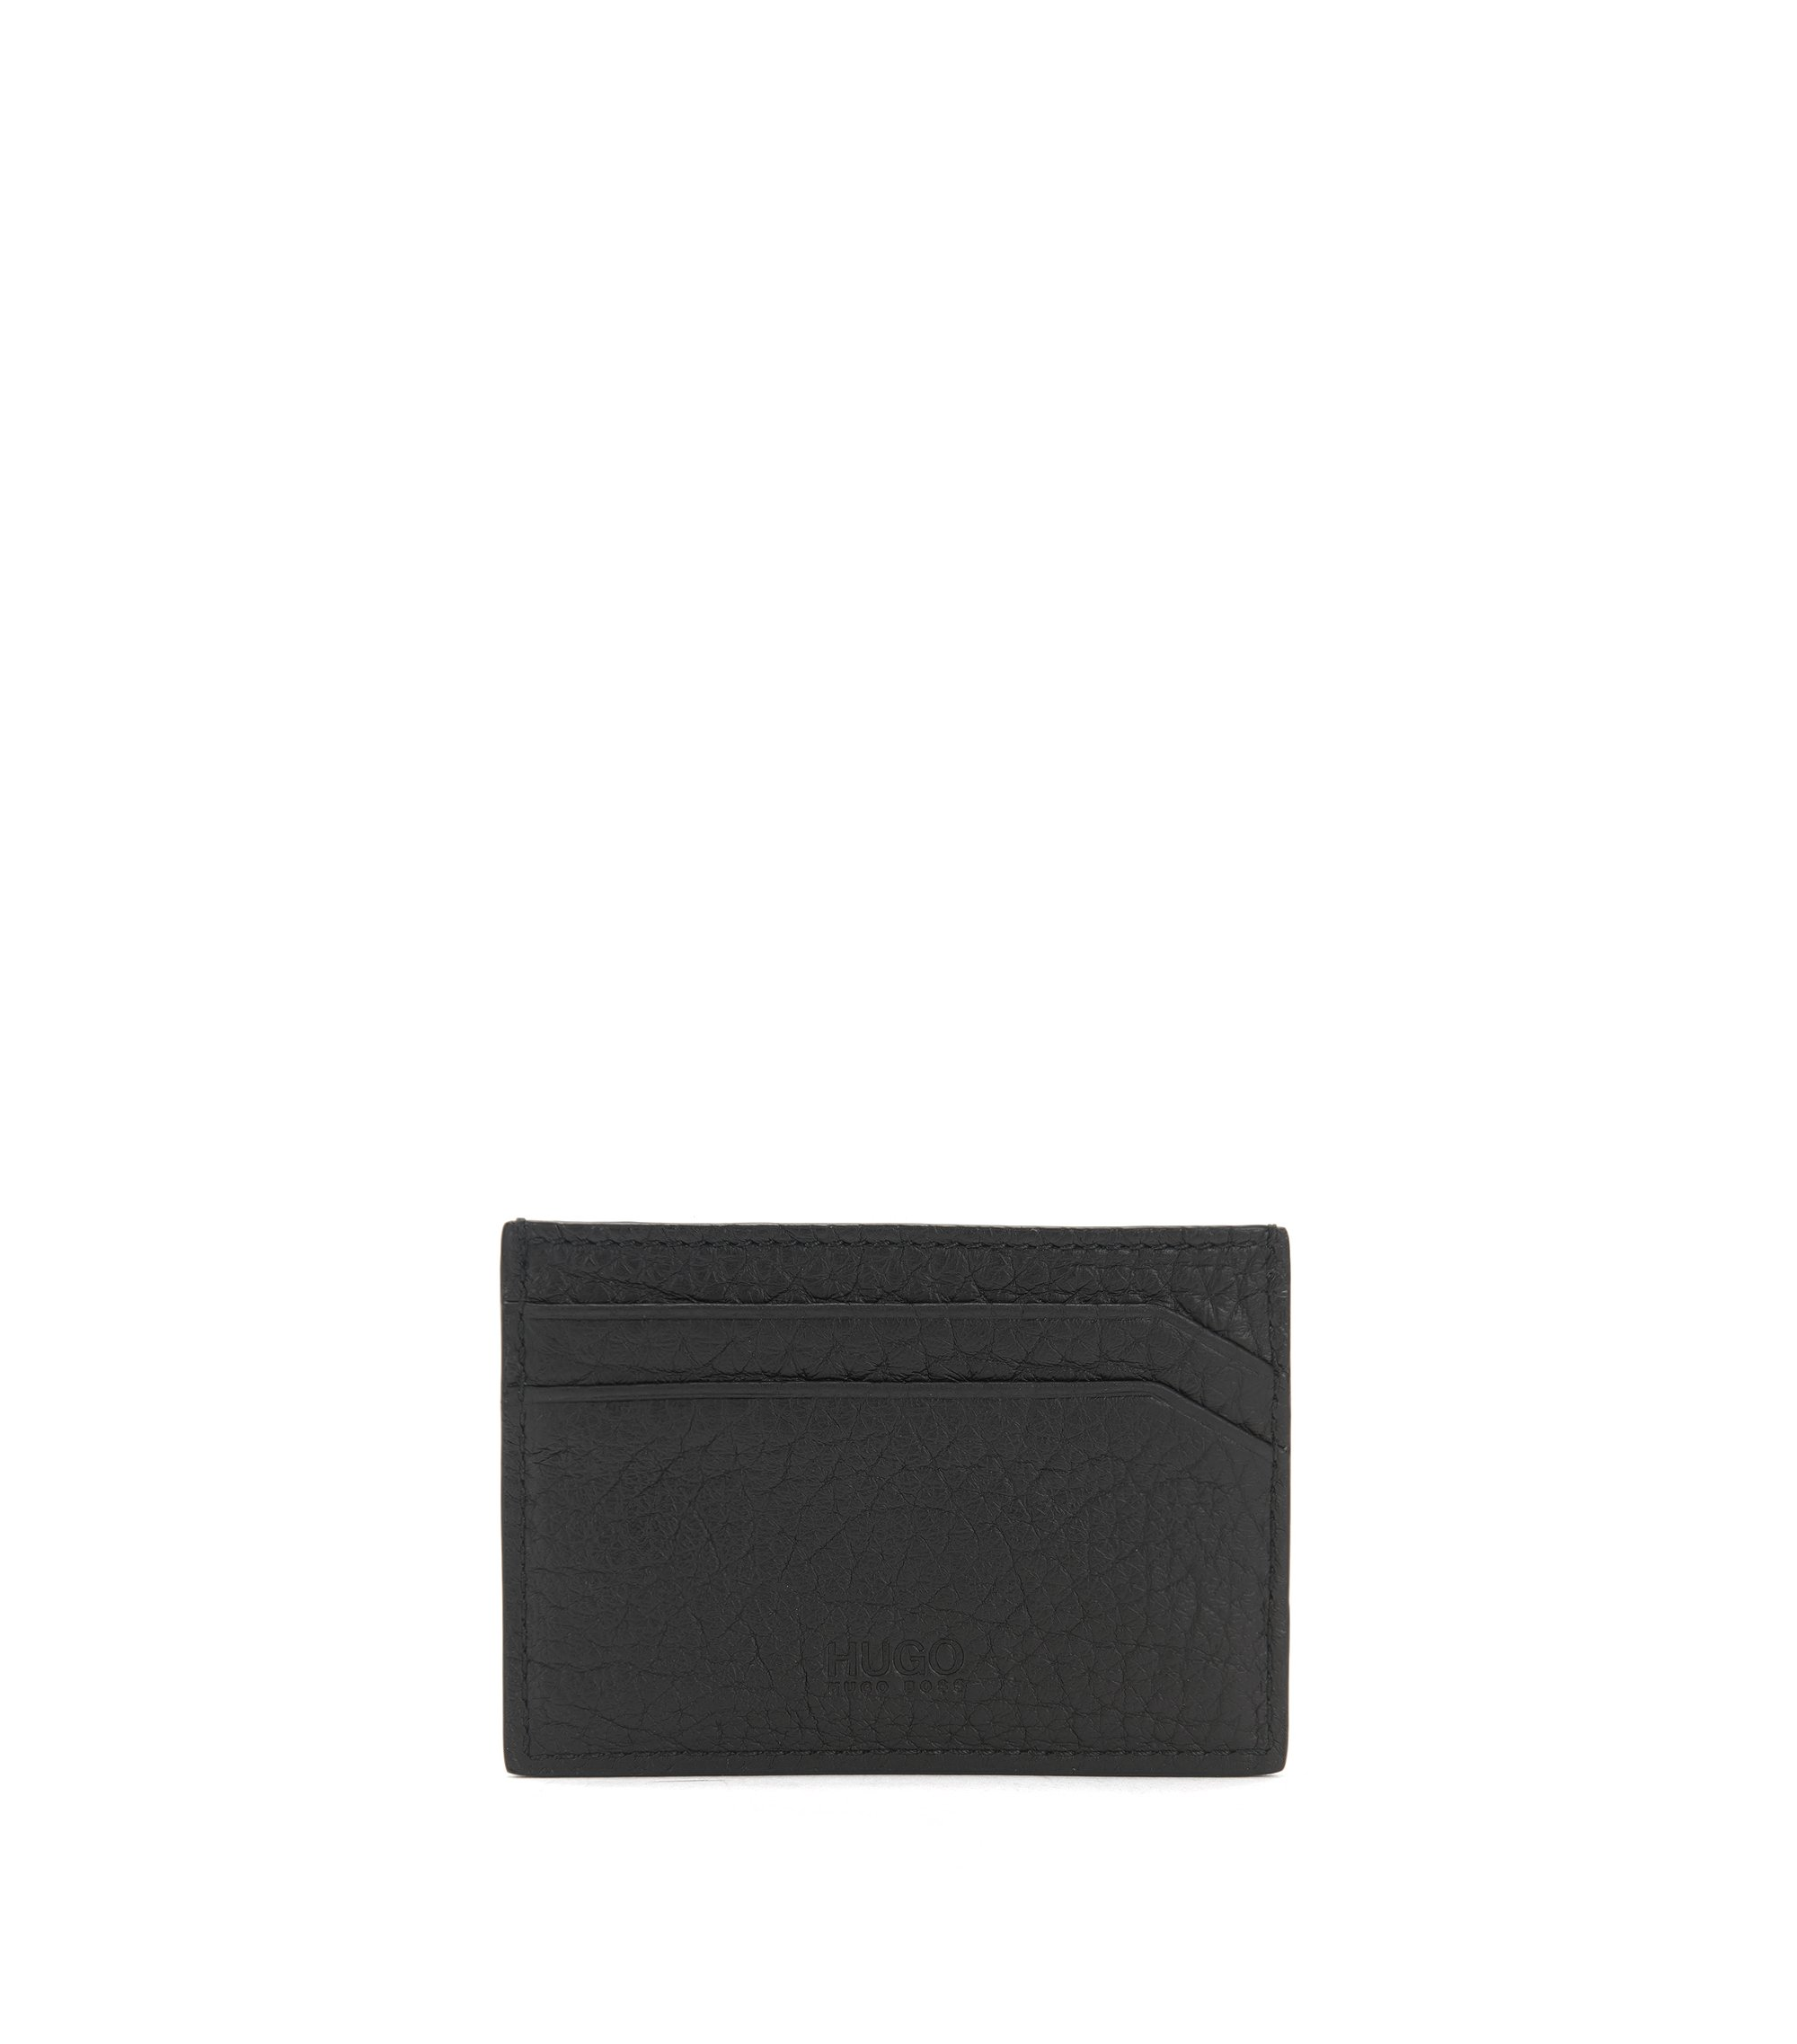 Studded Leather Cardholder | Victorian S S Card, Black